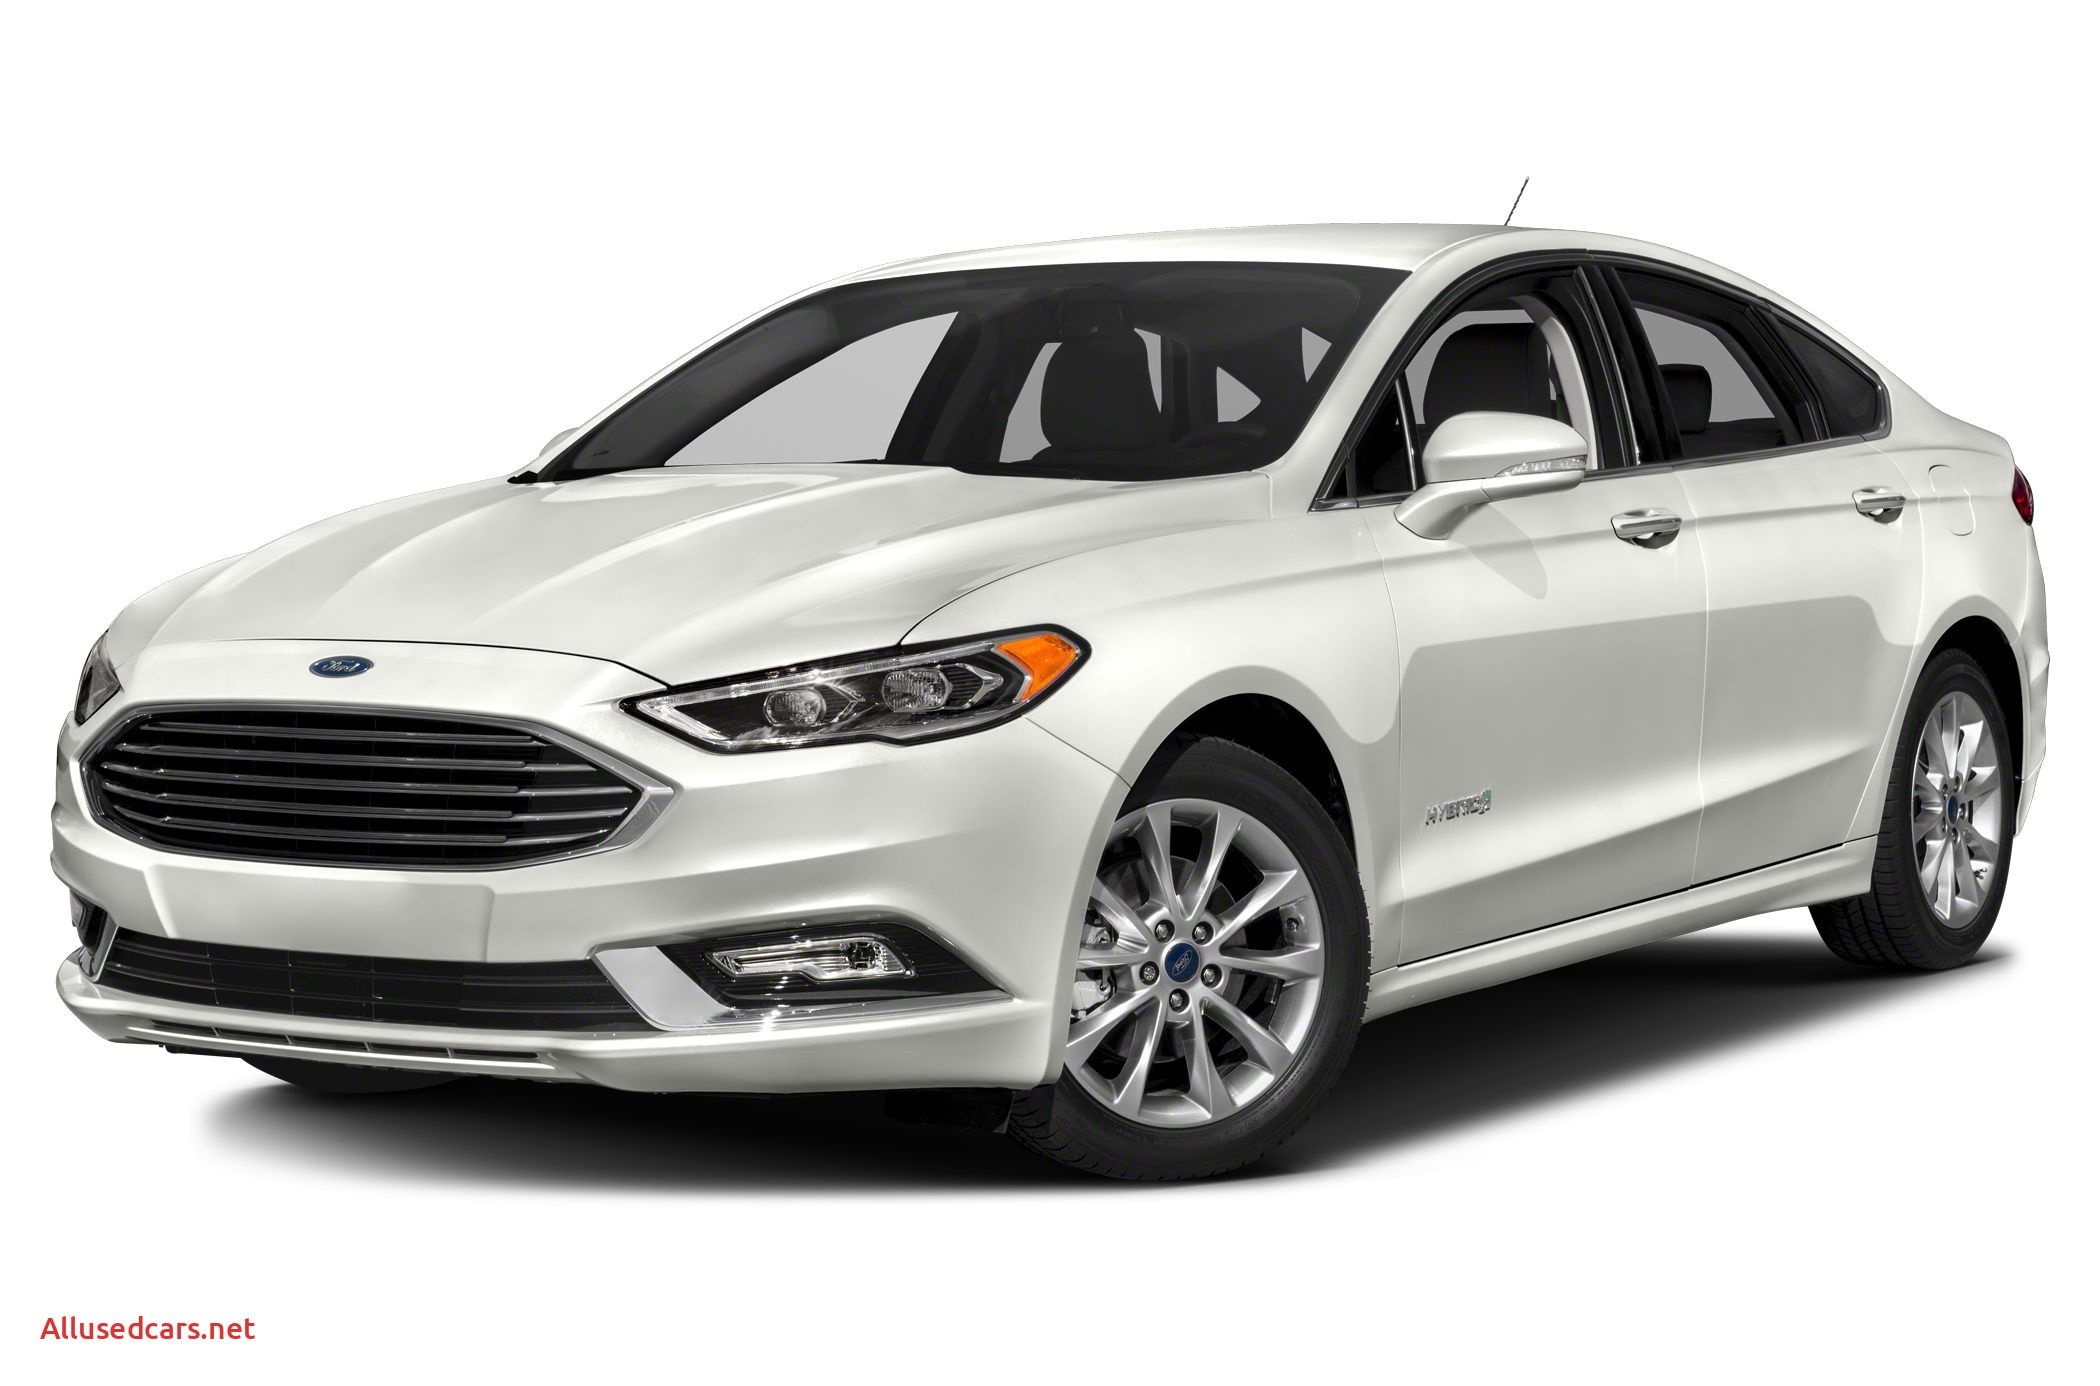 2017 Ford Fusion Hybrid Specs And Prices In 2020 Ford Fusion Ford Convertible Most Fuel Efficient Cars